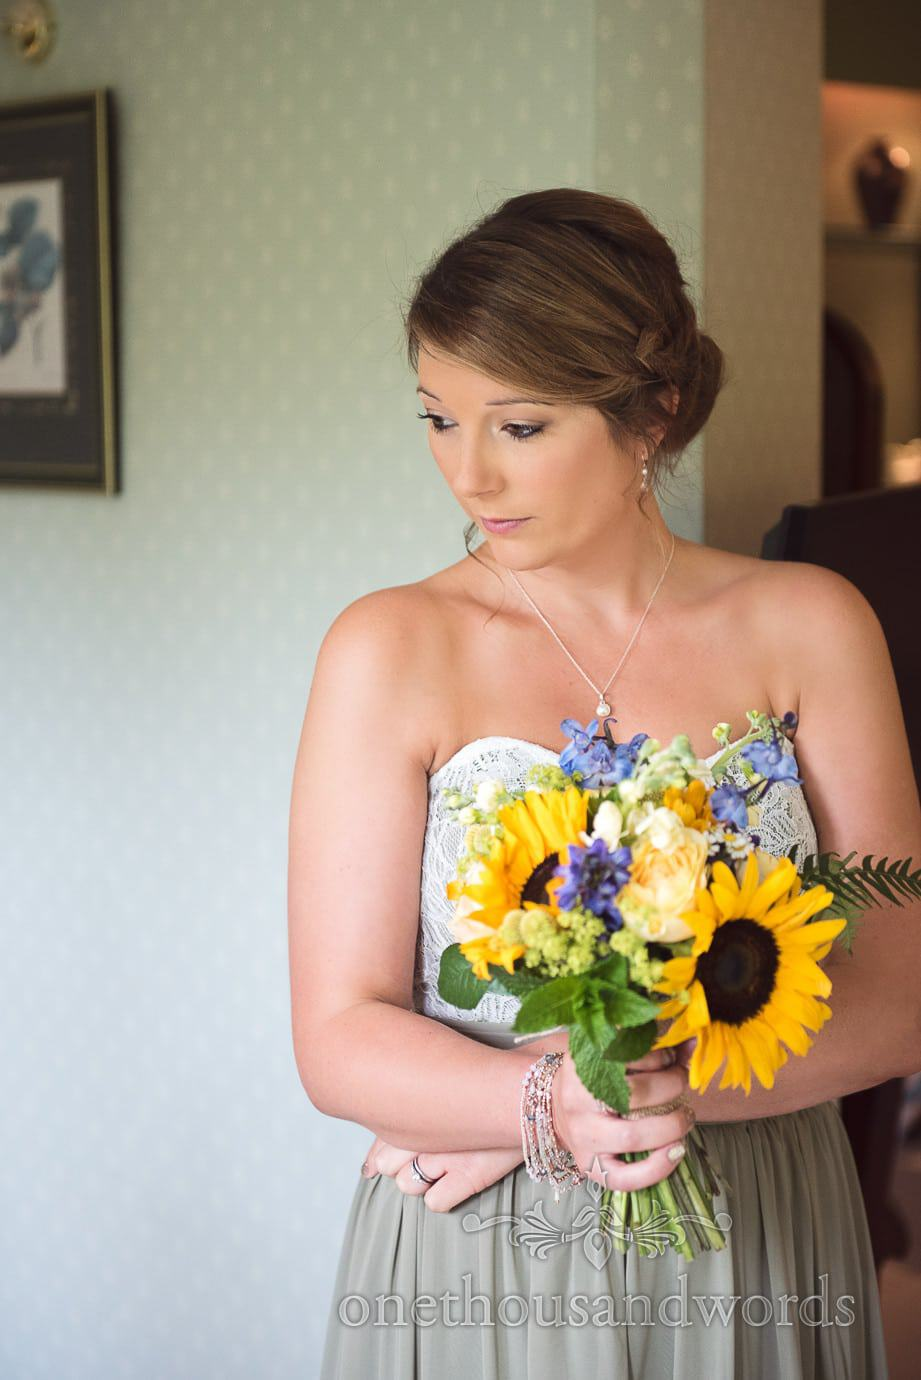 Stunning bridesmaid in green dress with summer flowers wedding bouquet with sunflowers